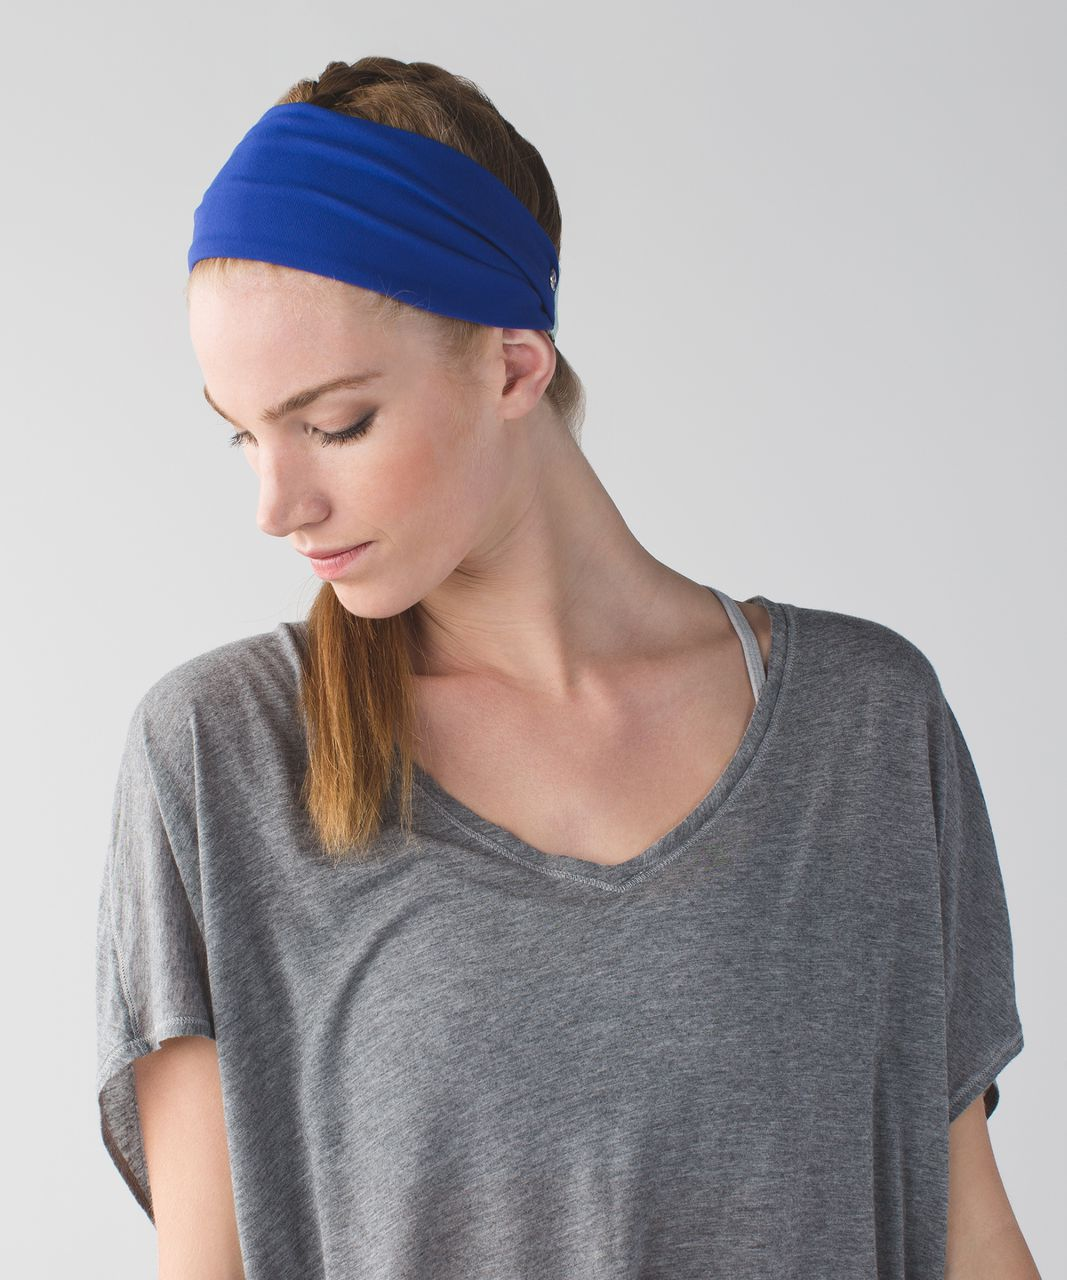 c86ad4aa7c1 Lululemon Fringe Fighter Headband - Sapphire Blue / Heathered Sea Mist -  lulu fanatics